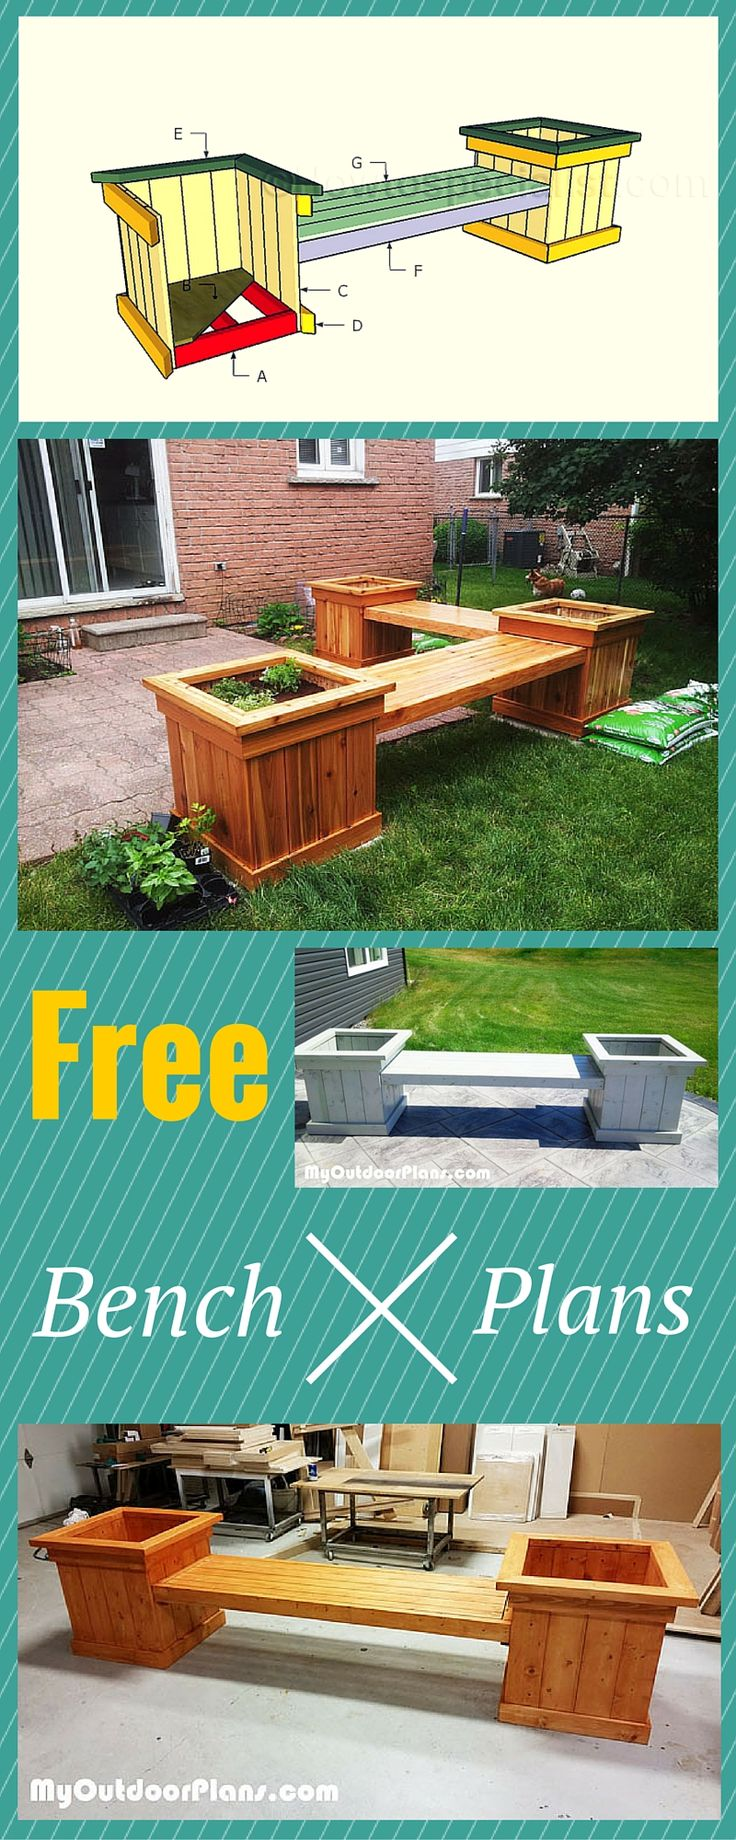 Planter bench plans – Easy to follow tips, tricks and ideal to help you build an outdoor bench with charm! Free plans at www.myoutdoorplan… #diy #be…